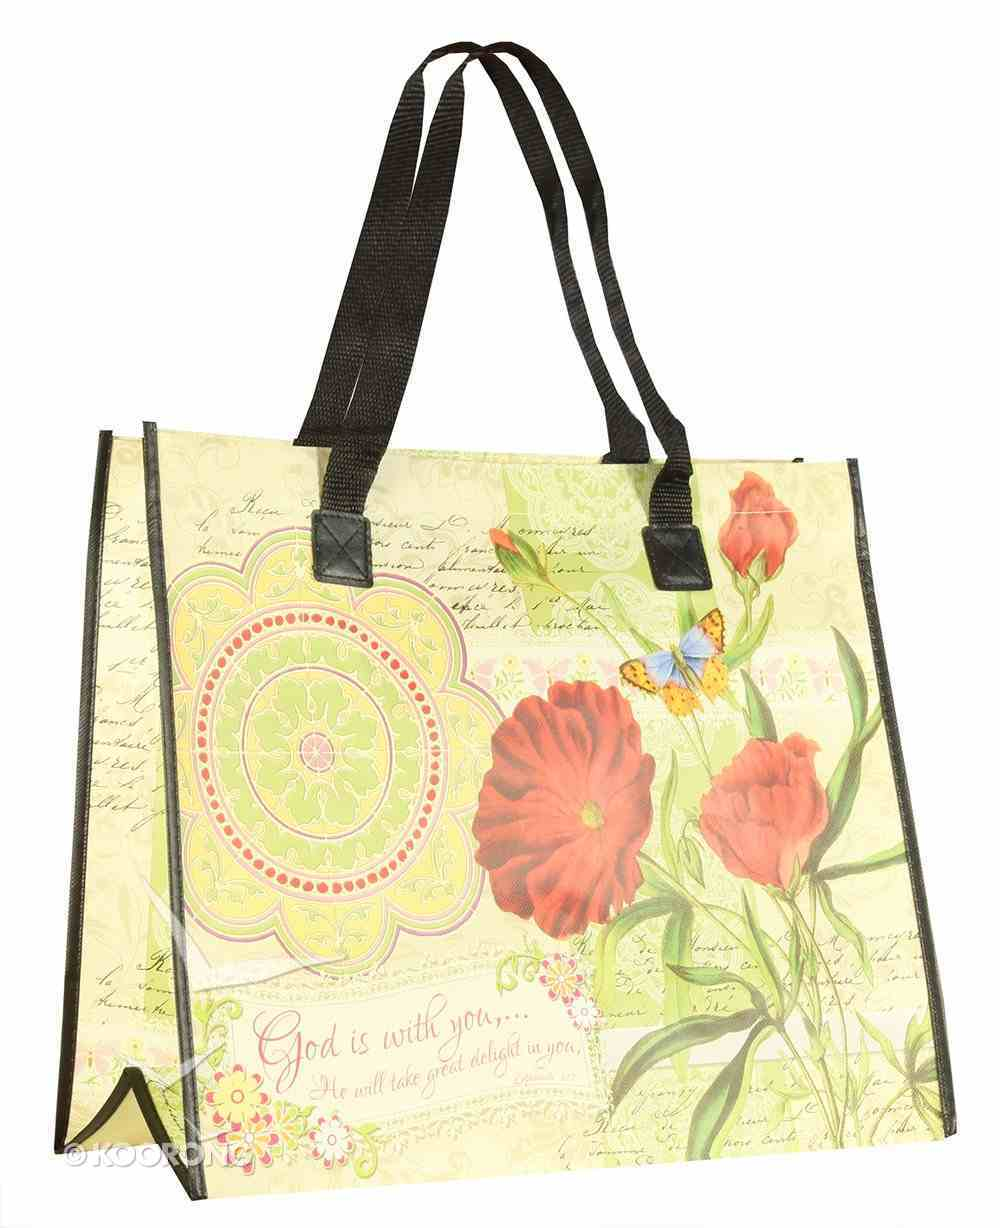 Tote Bag: God is With You (With Black Handles) Soft Goods